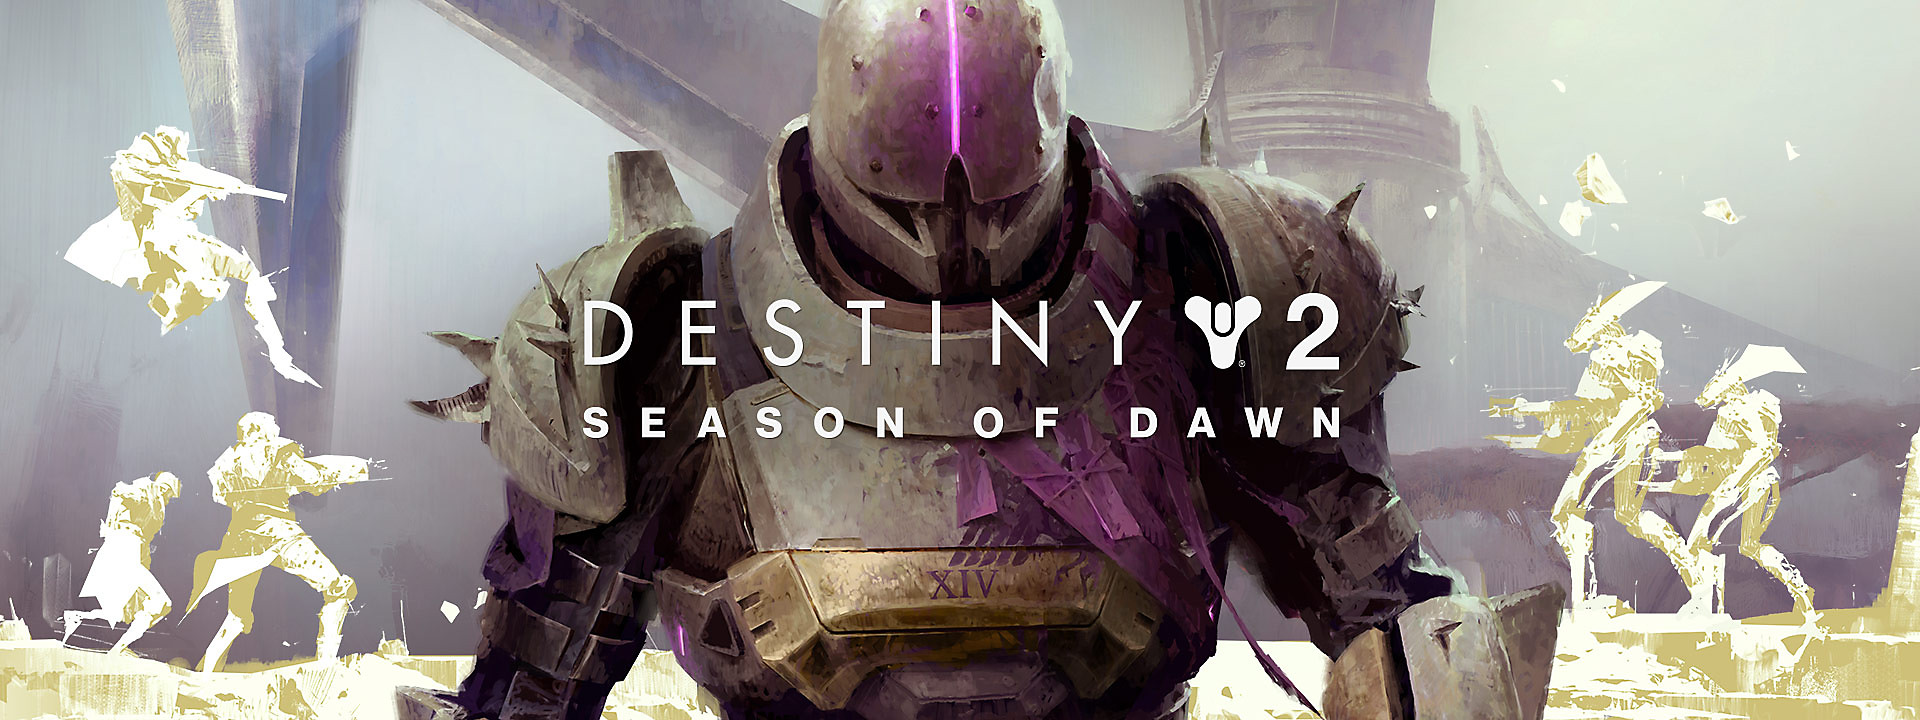 Destiny 2 Season 9